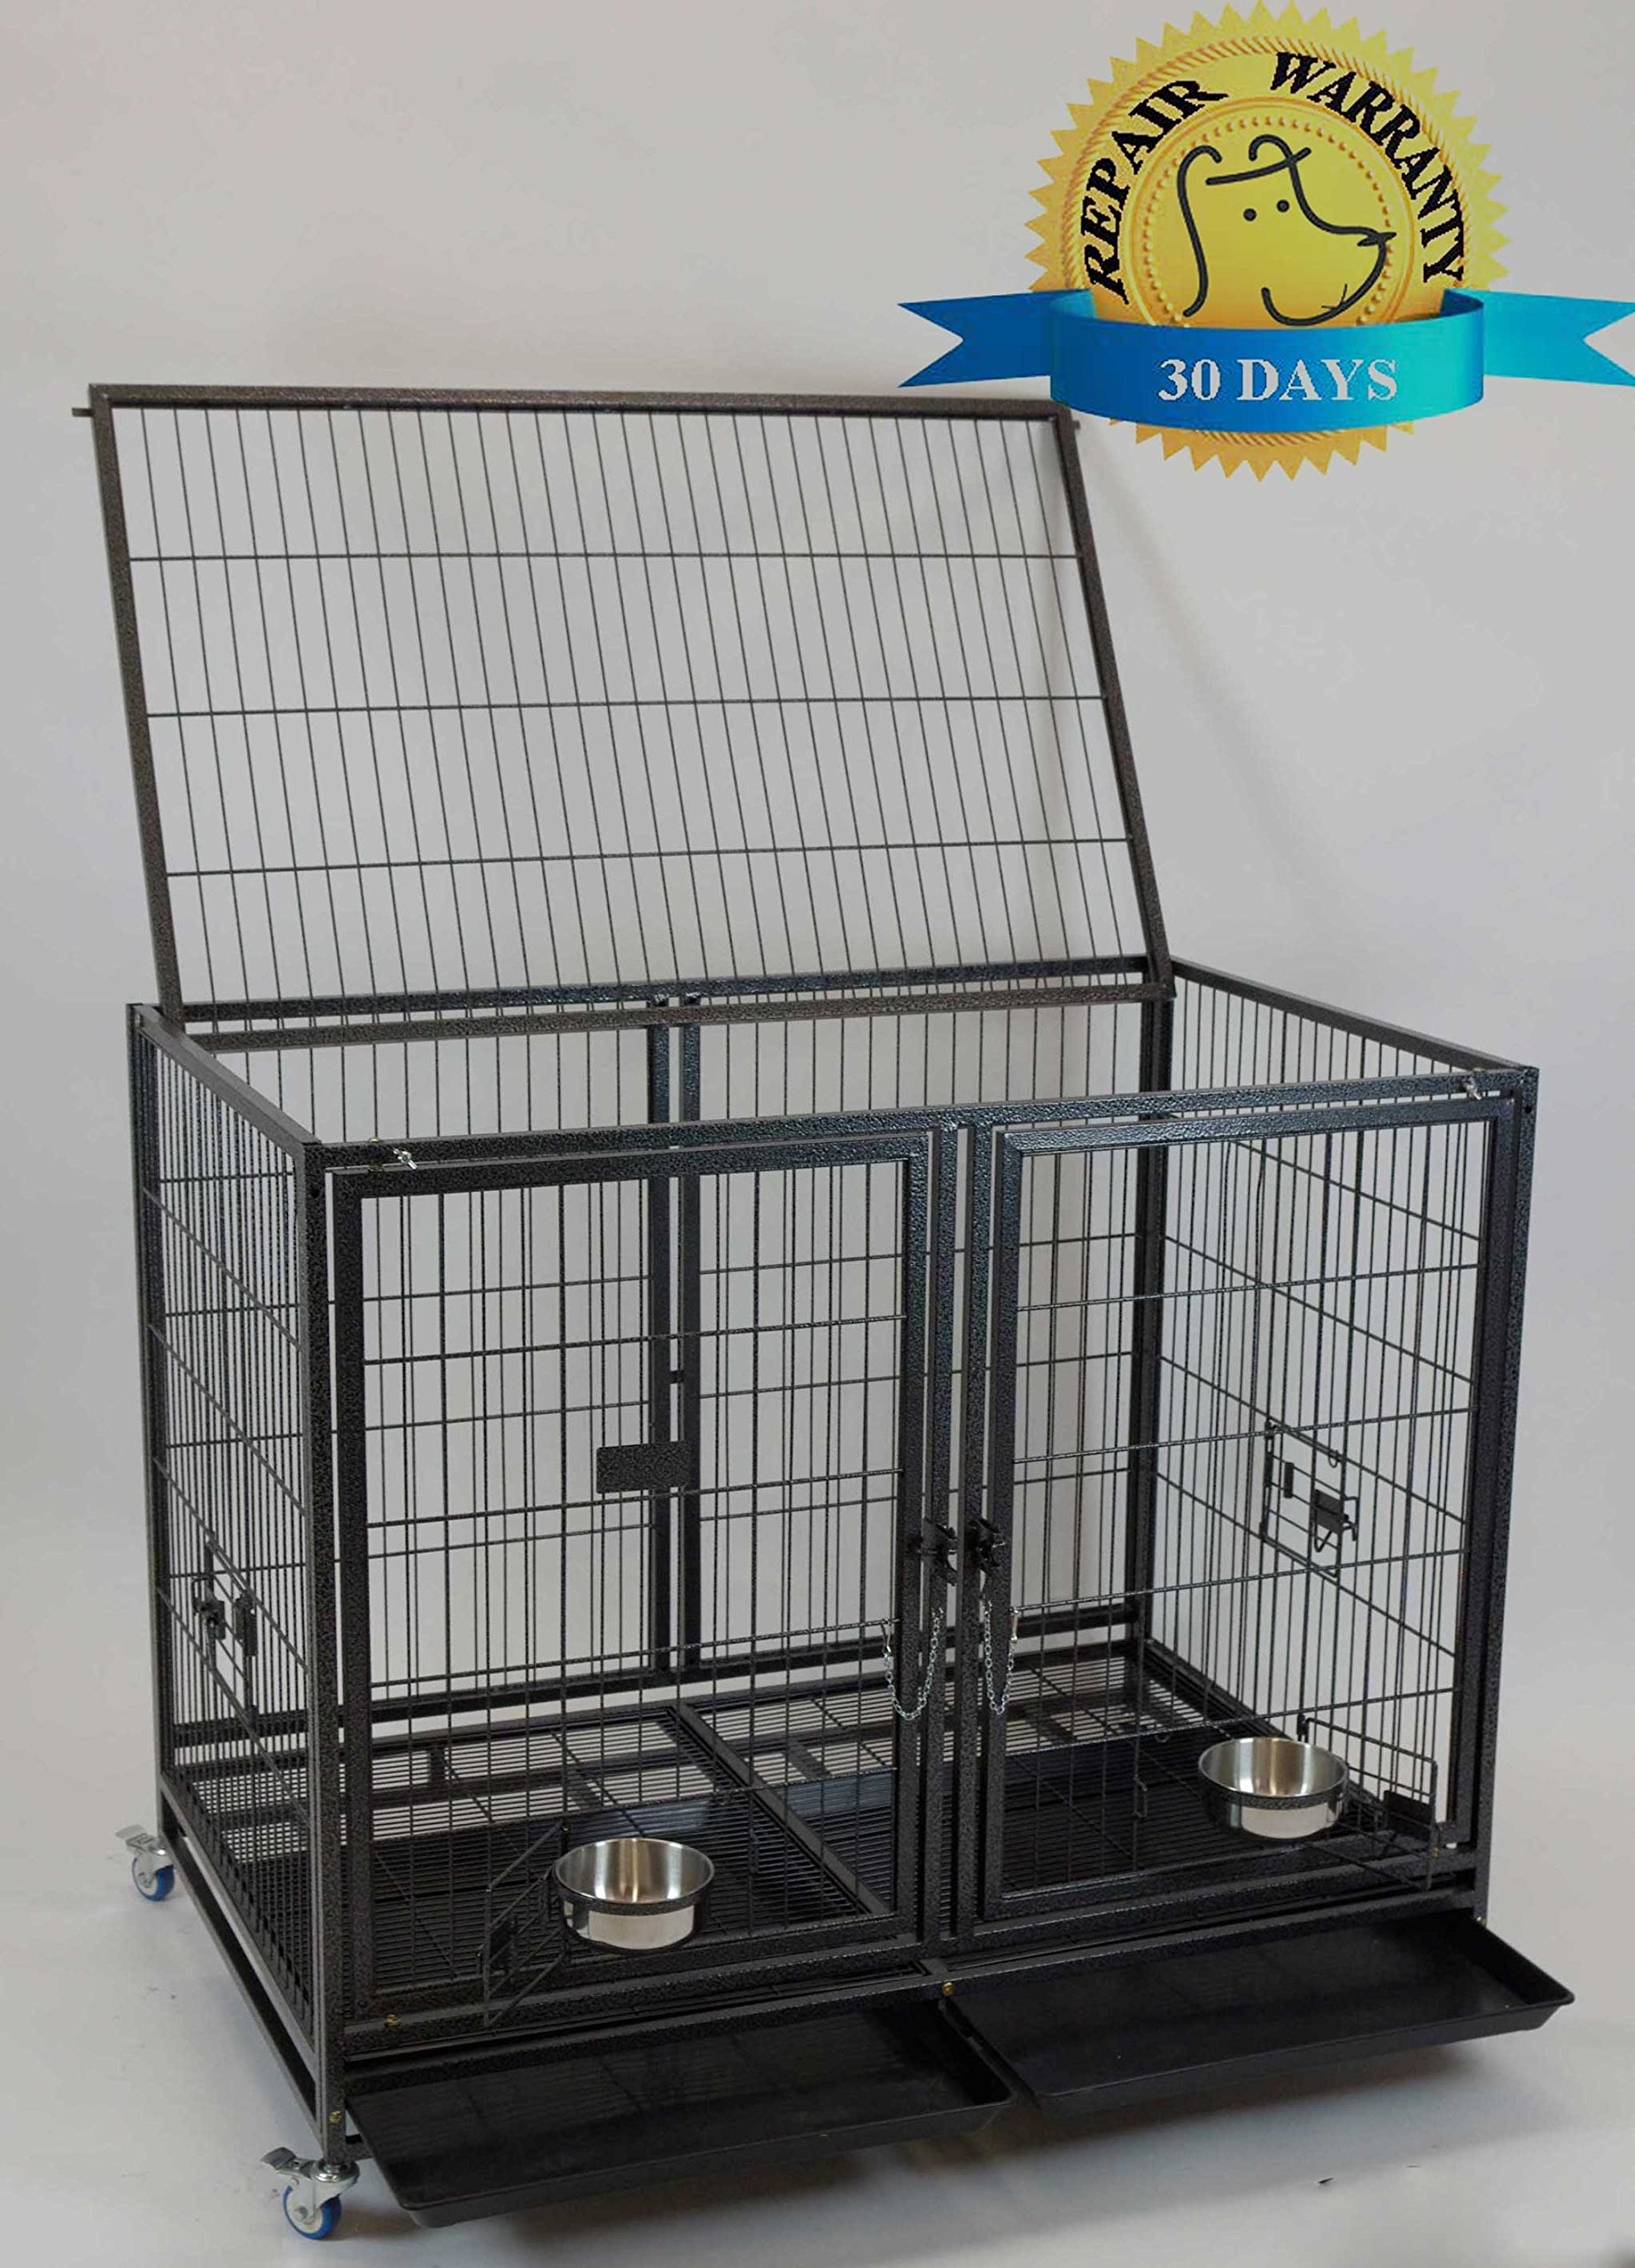 Homey Pet-43'' All Metal Open Top Stackable Heavy Duty Cage(Lower) w/ Floor Grid, Tray, Divider, Open Top, and Feeding Bowl